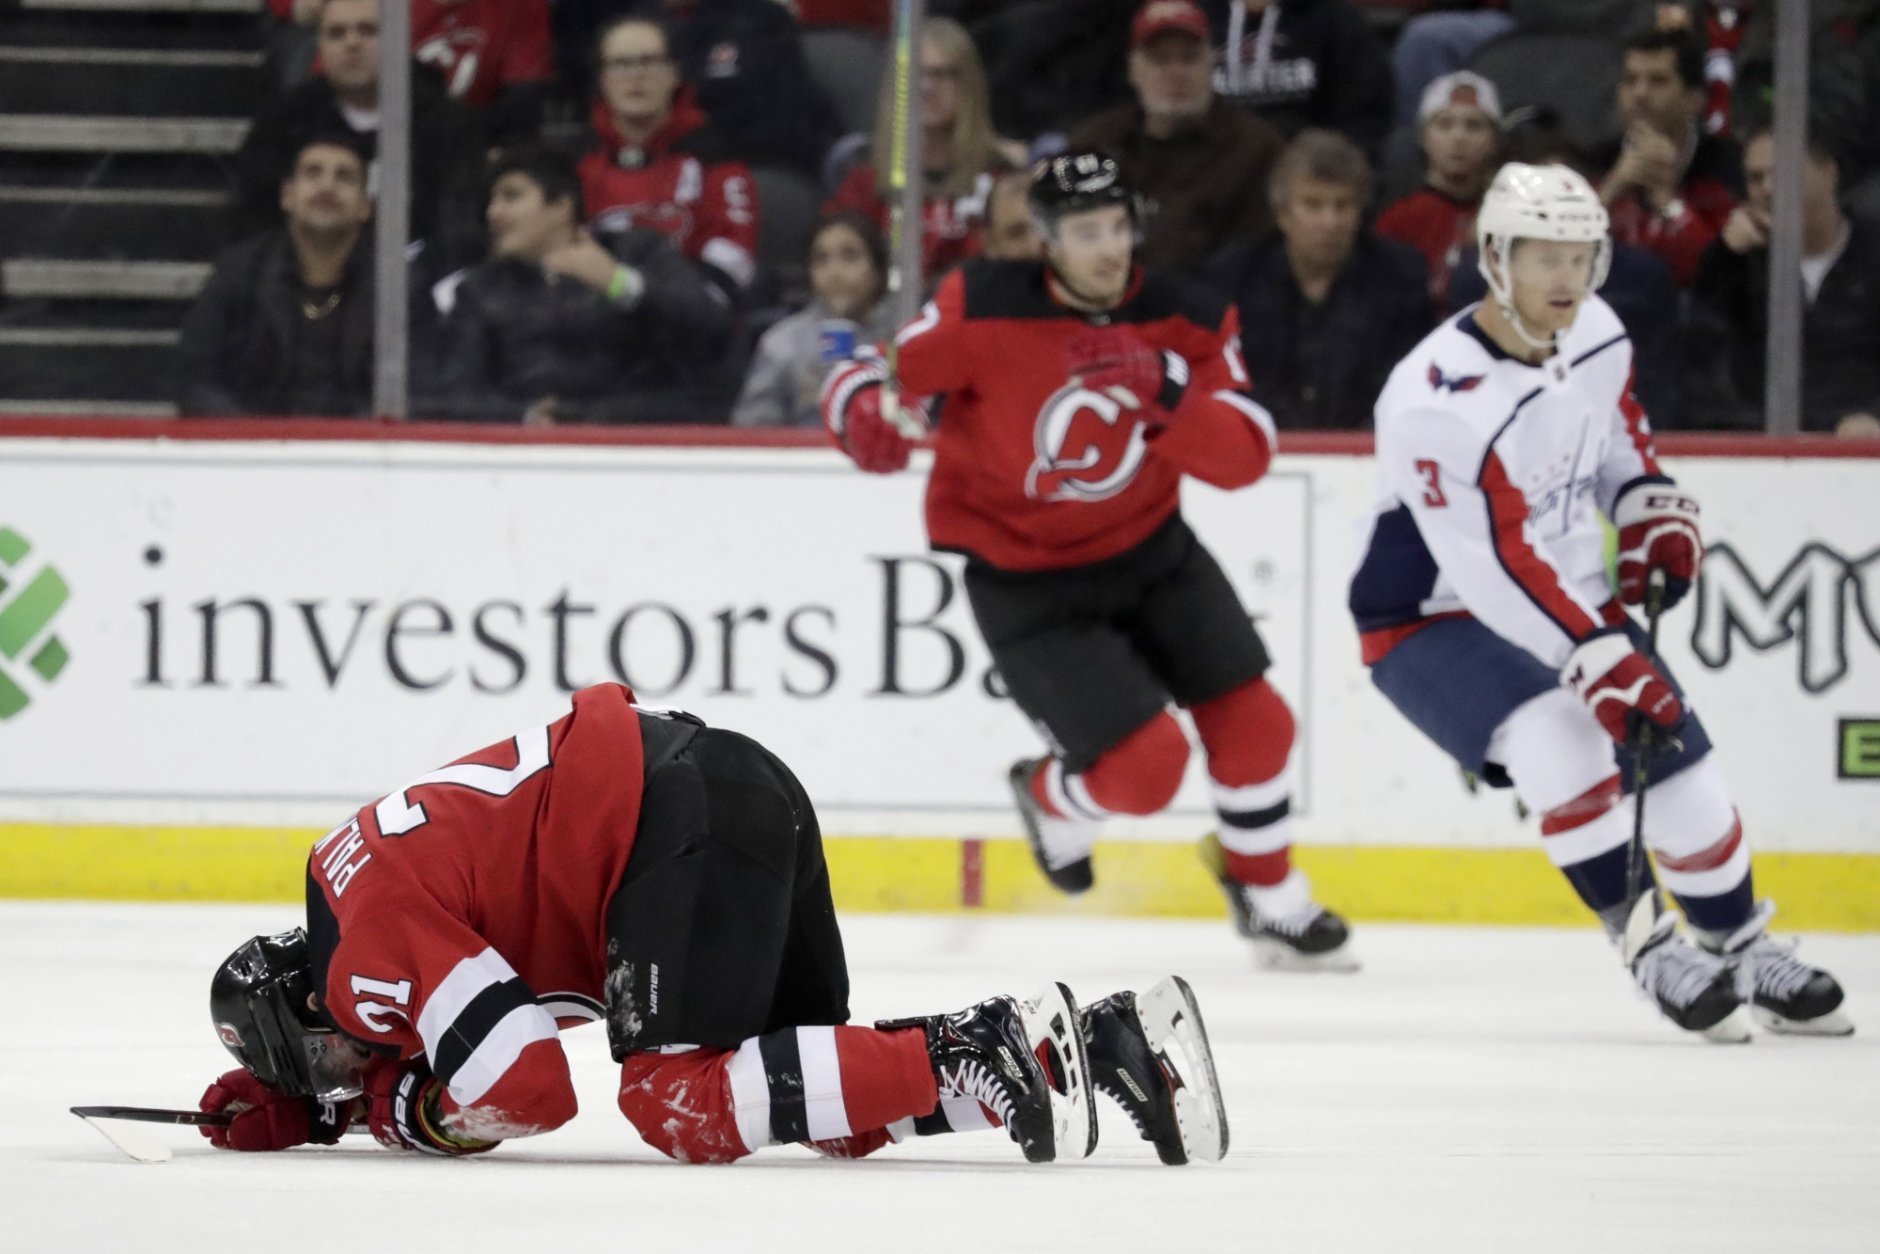 New Jersey Devils right wing Kyle Palmieri falls to the ice during the first period of an NHL hockey game against the Washington Capitals, Tuesday, March 19, 2019, in Newark, N.J. (AP Photo/Julio Cortez)